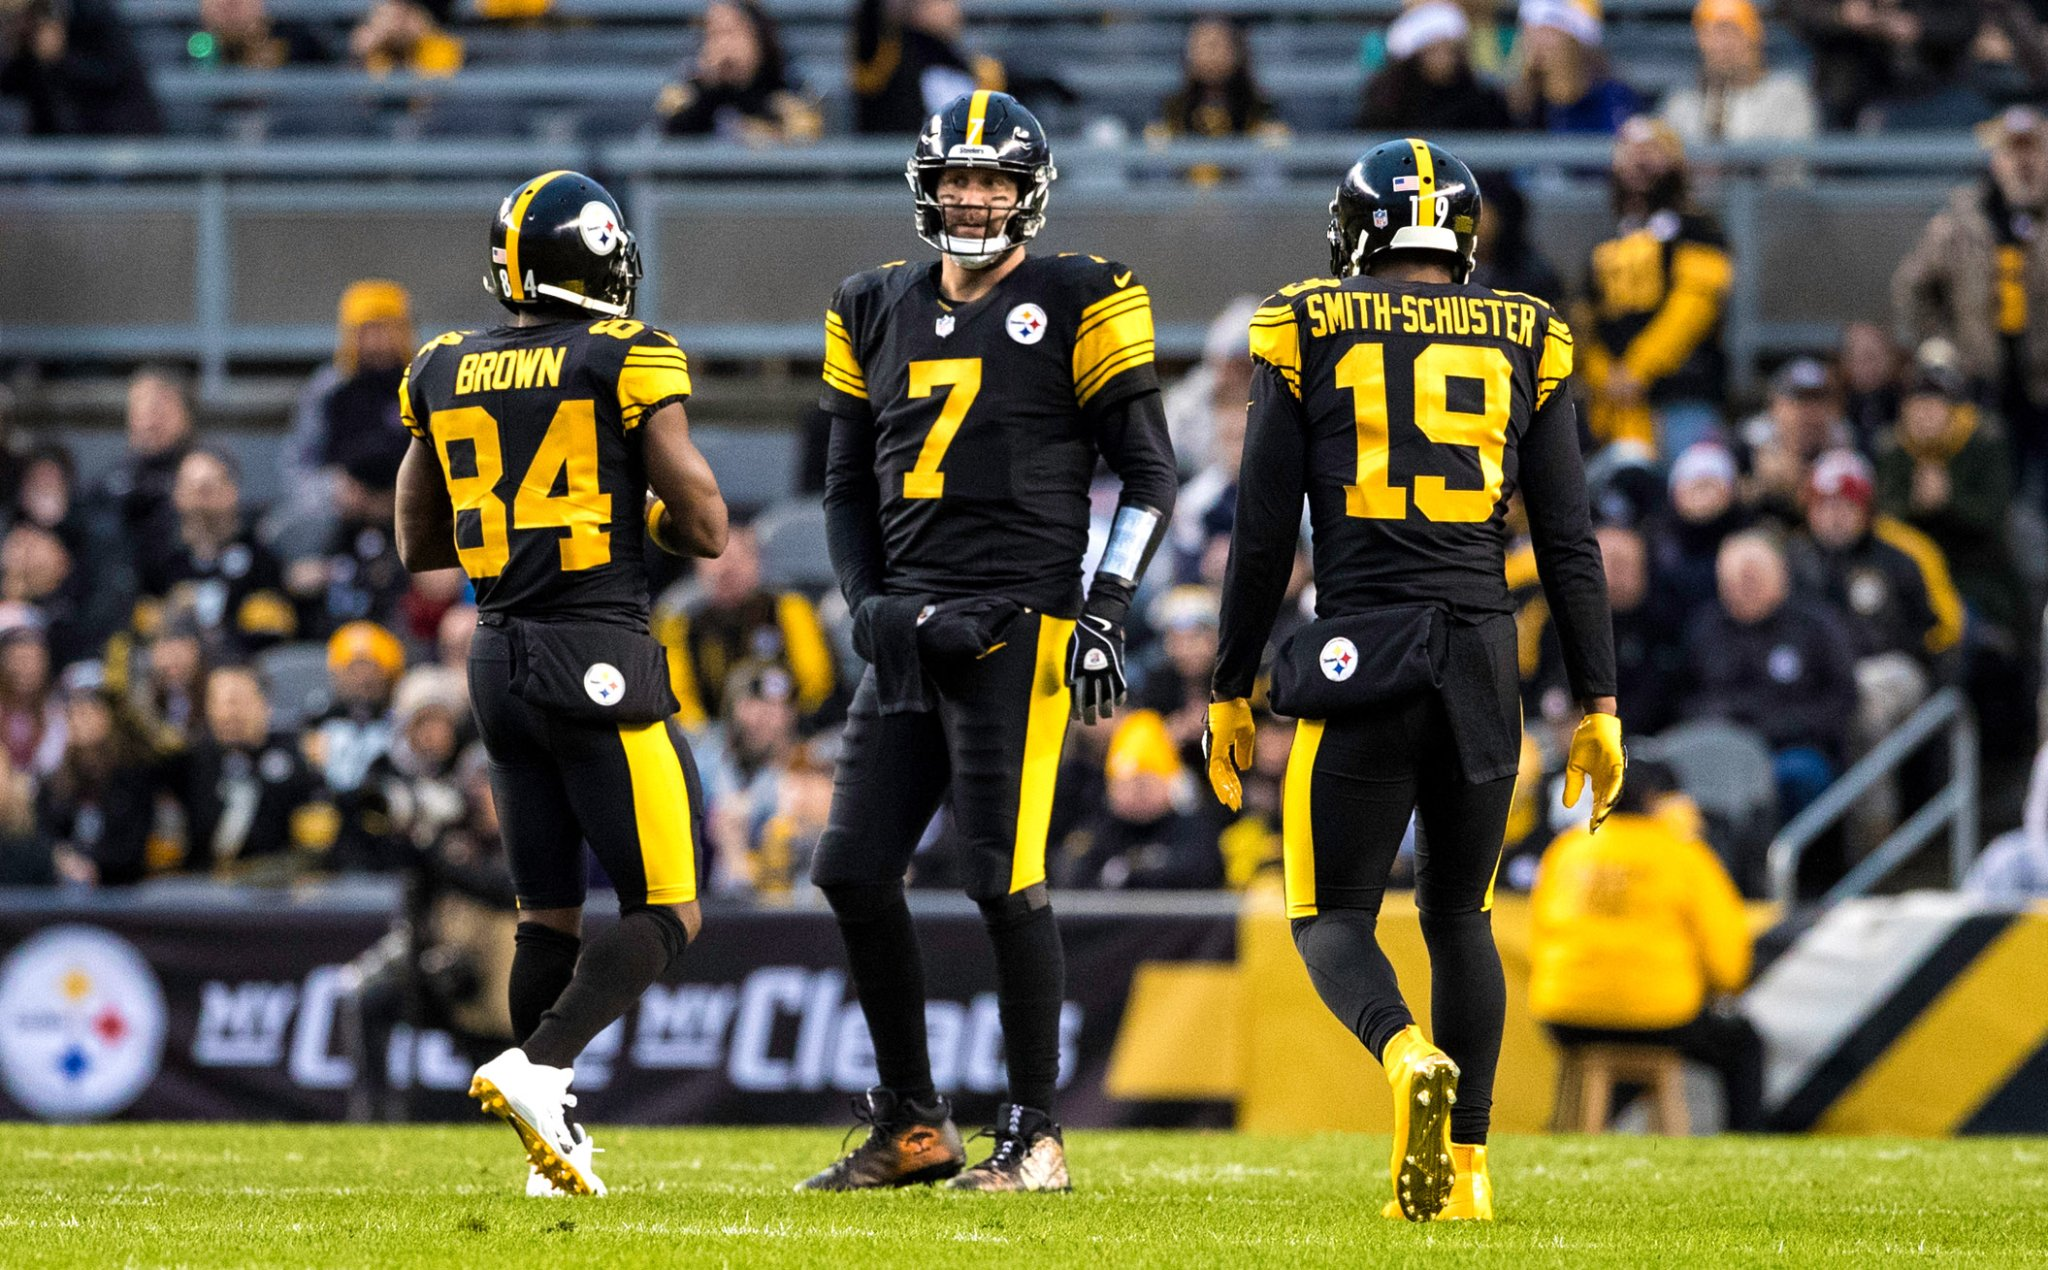 Ben Roethlisberger Shades Antonio Brown With Comment About Having Unselfish Wide Receivers - BroBible